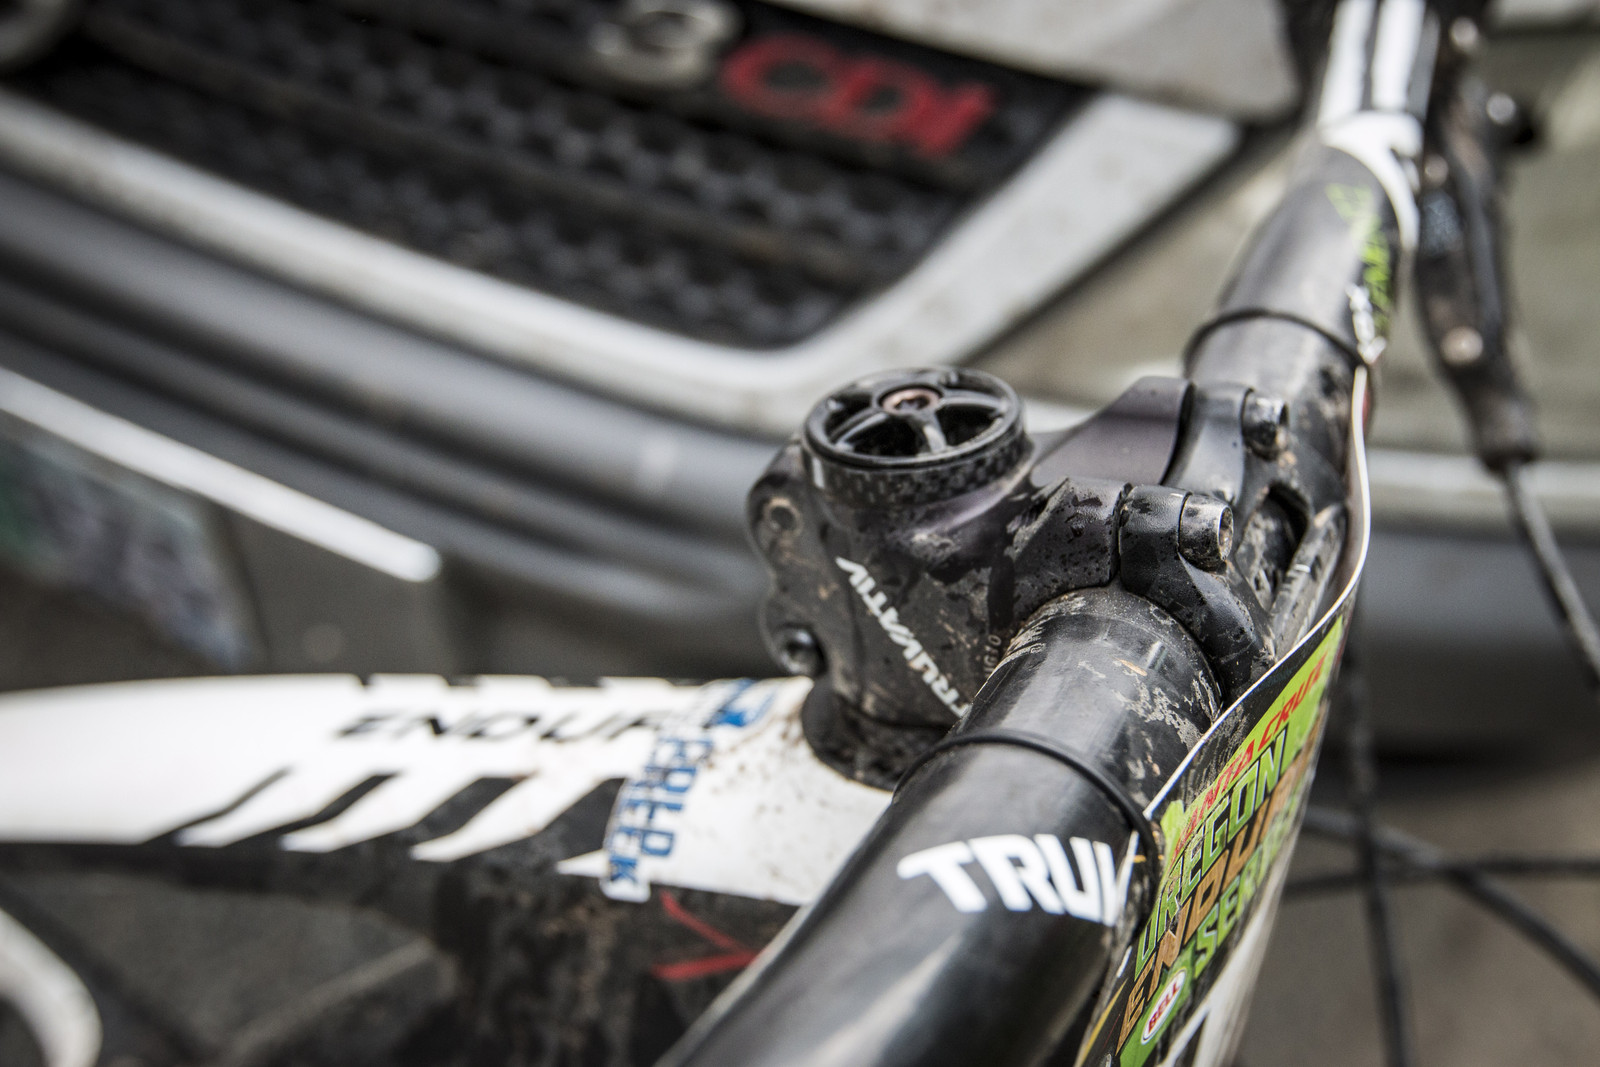 50mm Truvativ Holzfeller Stem on Kirt Voreis' Specialized Enduro 29 - WINNING BIKE: Kirt Voreis' Specialized Enduro 29 - Mountain Biking Pictures - Vital MTB